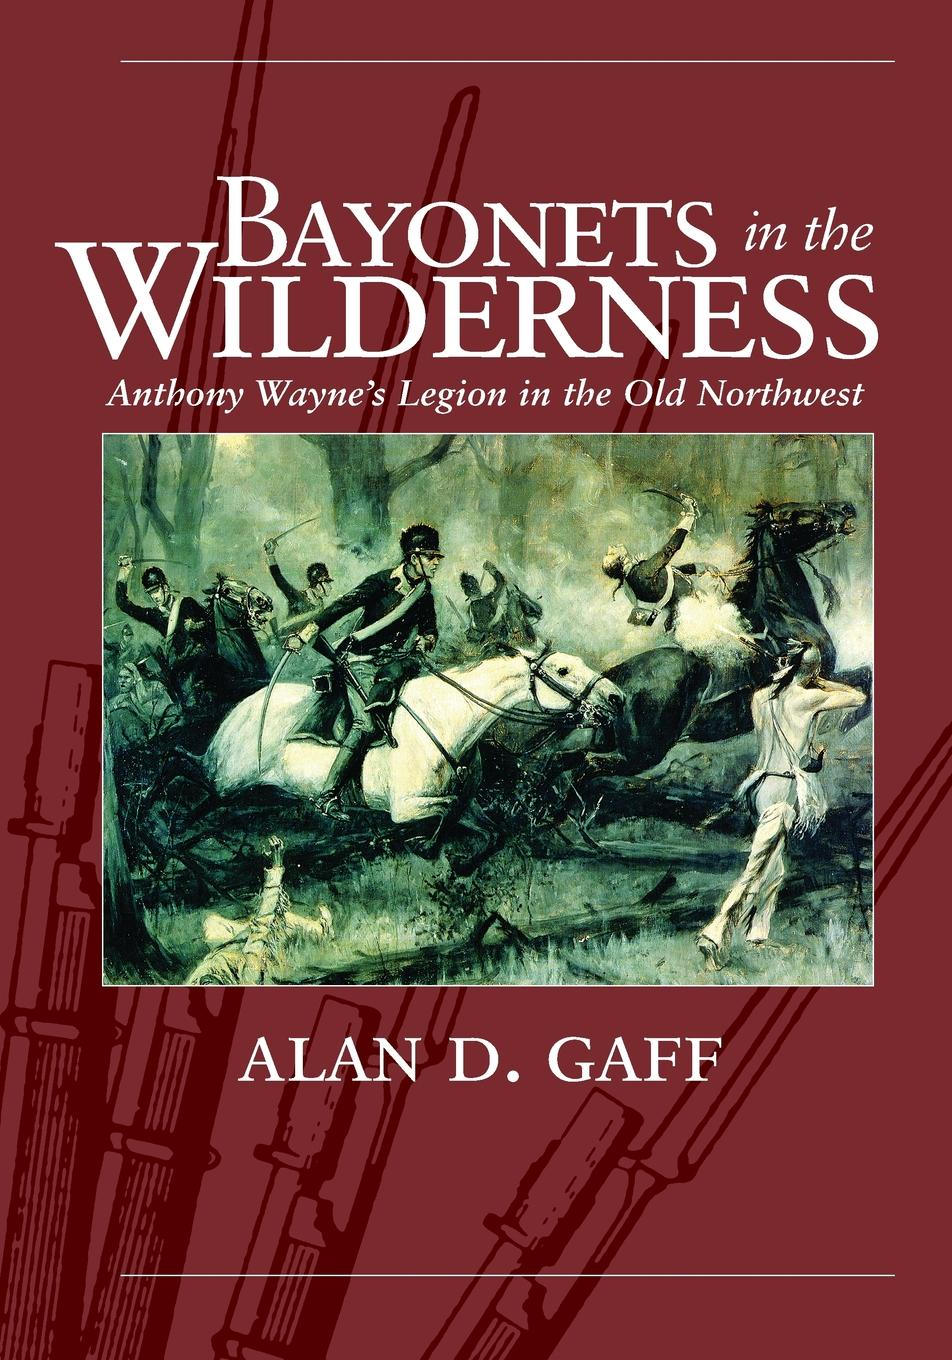 Alan D Gaff BAYONETS IN THE WILDERNESS. ANTHONY WAYNE'S LEGION IN THE OLD NORTHWEST charles richard tuttle the centennial northwest an illustrated history of the northwest being a full and complete civil political and military history of this great section of the united states from its earliest settlement to the present time